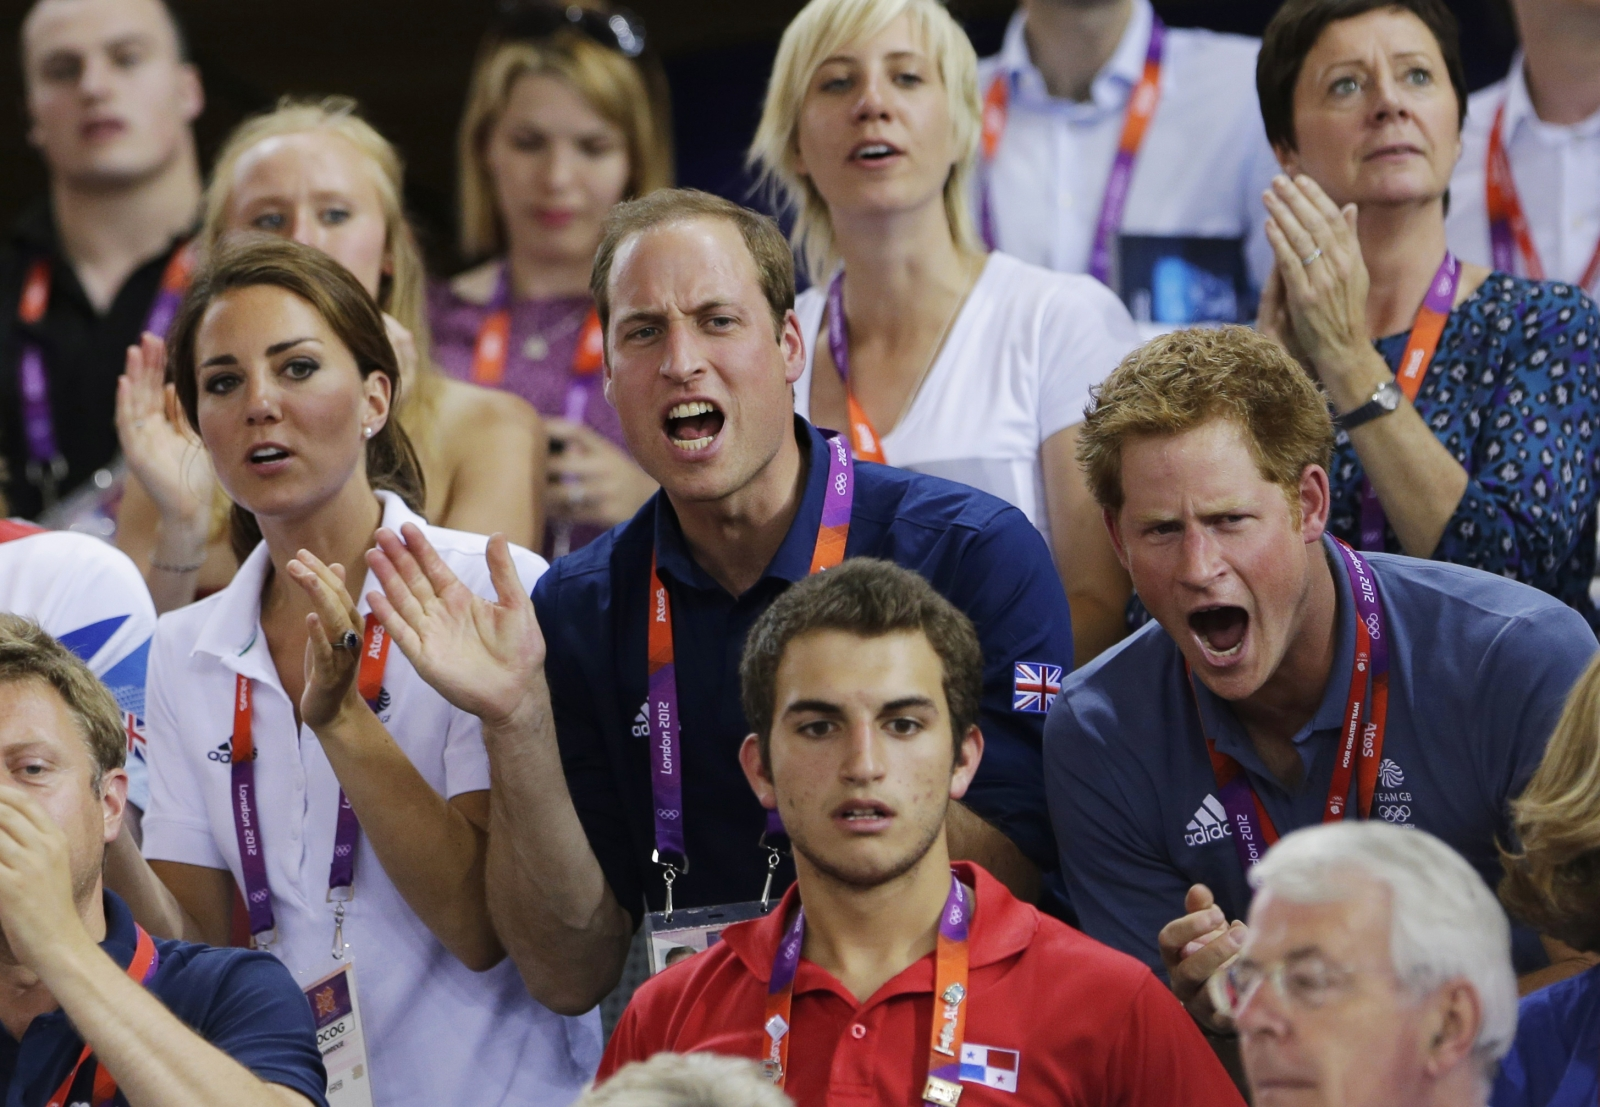 Princes William, Harry and Kate Middleton